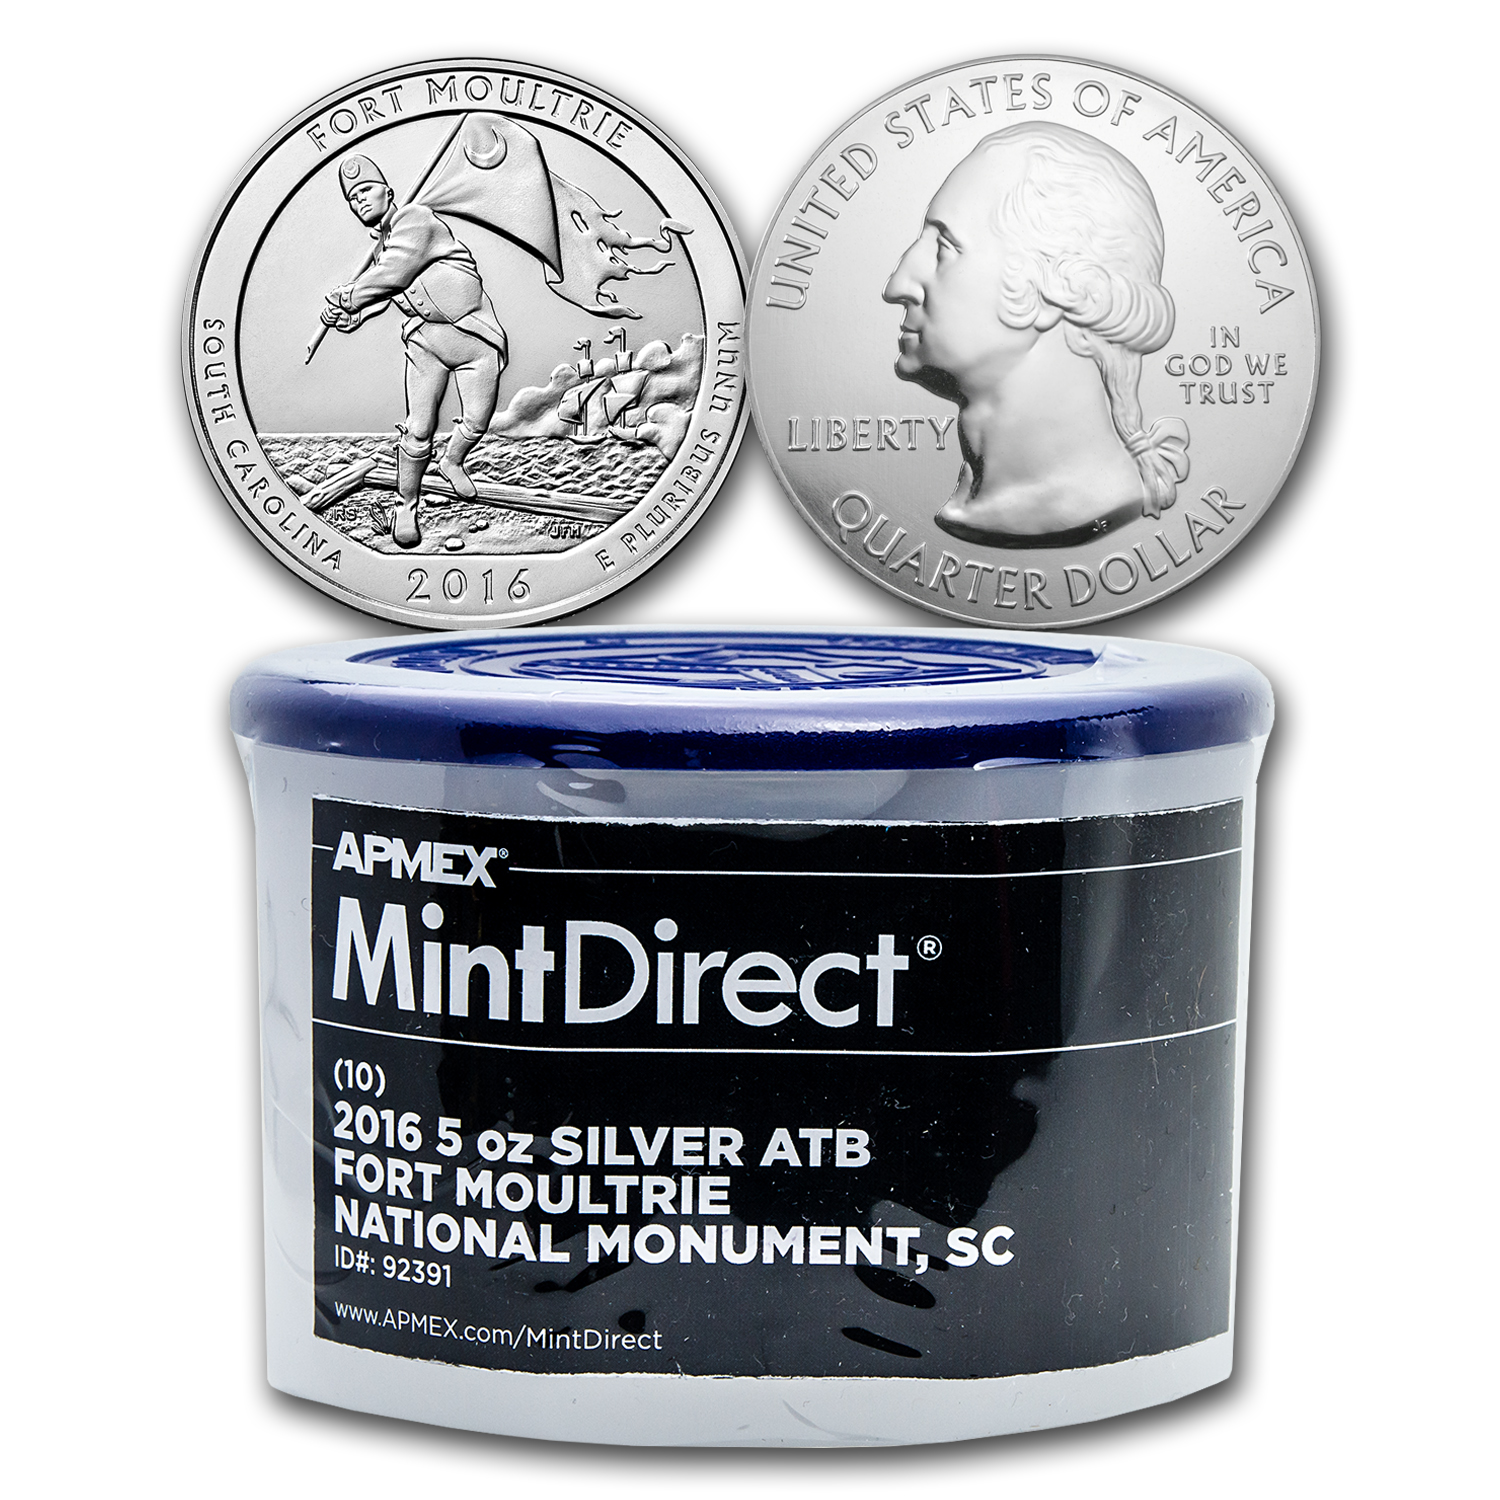 2016 5 oz Silver ATB Fort Moultrie (10-Coin MintDirect® Tube)